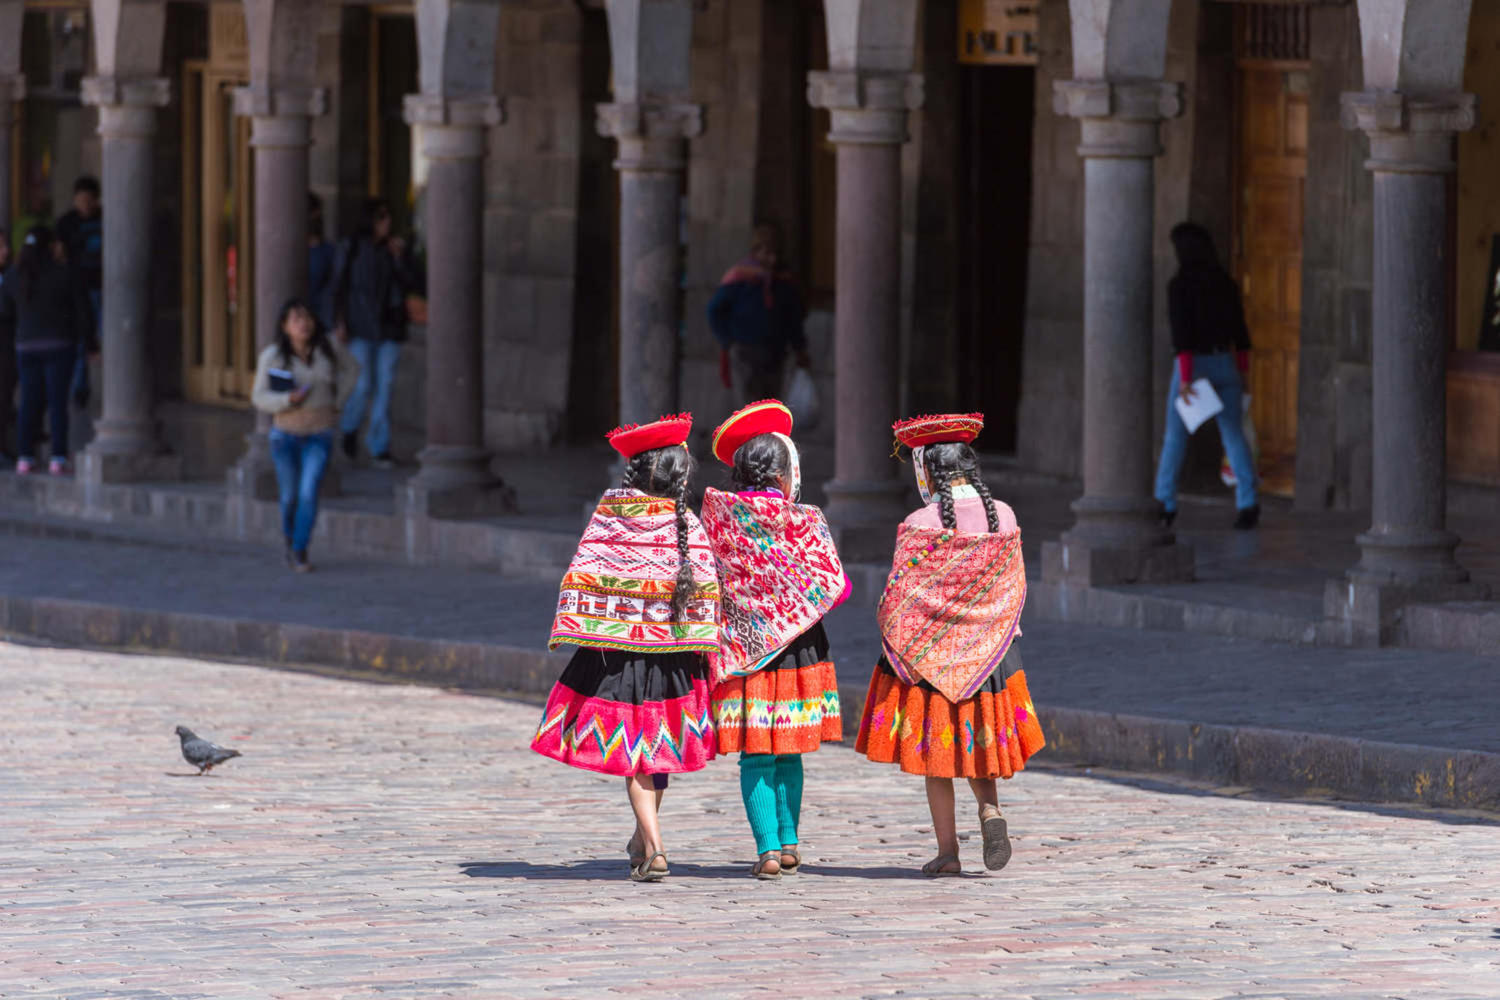 Peruvians wearing traditional clothes on a parade at Cusco's Plaza de Armas